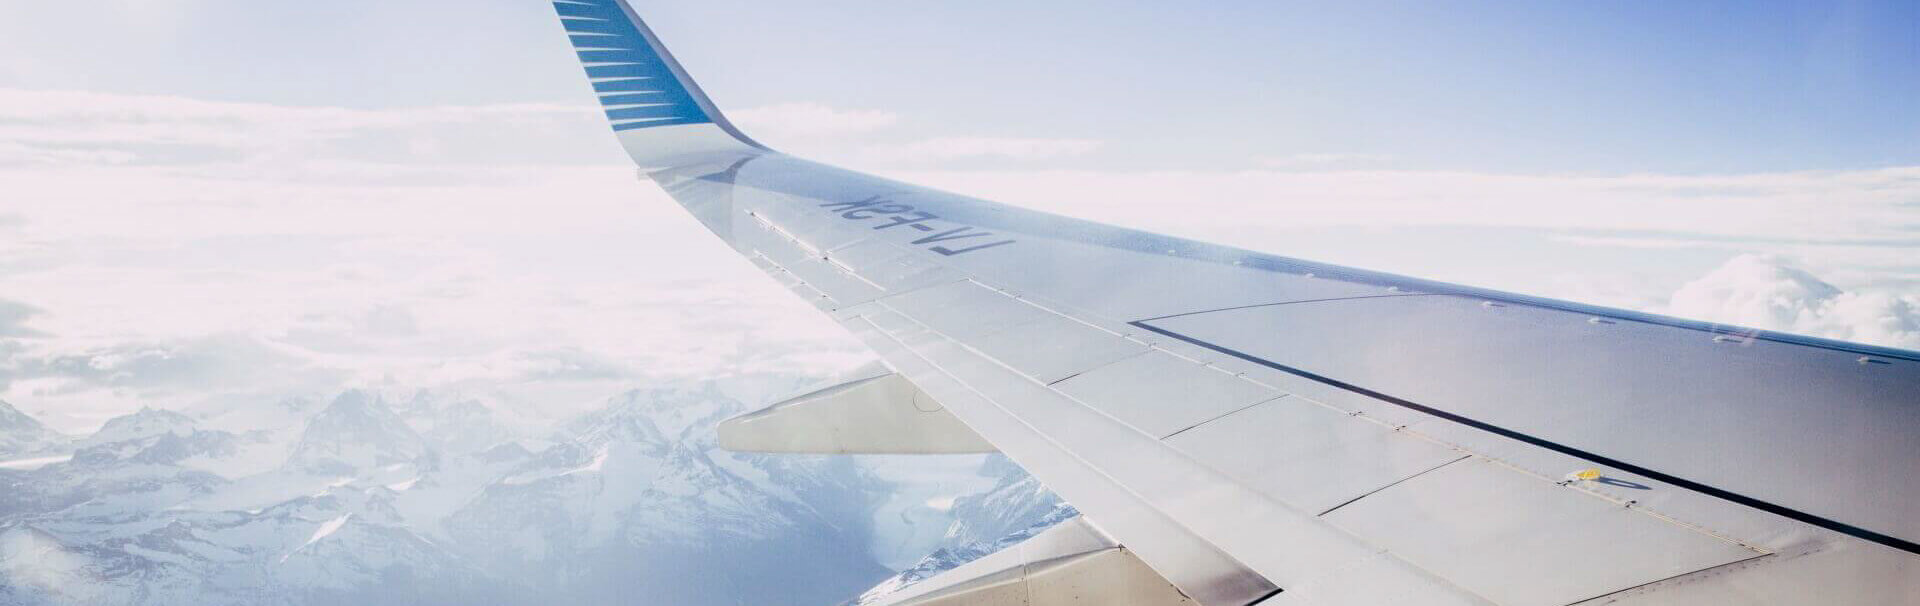 The wing of a plane flying